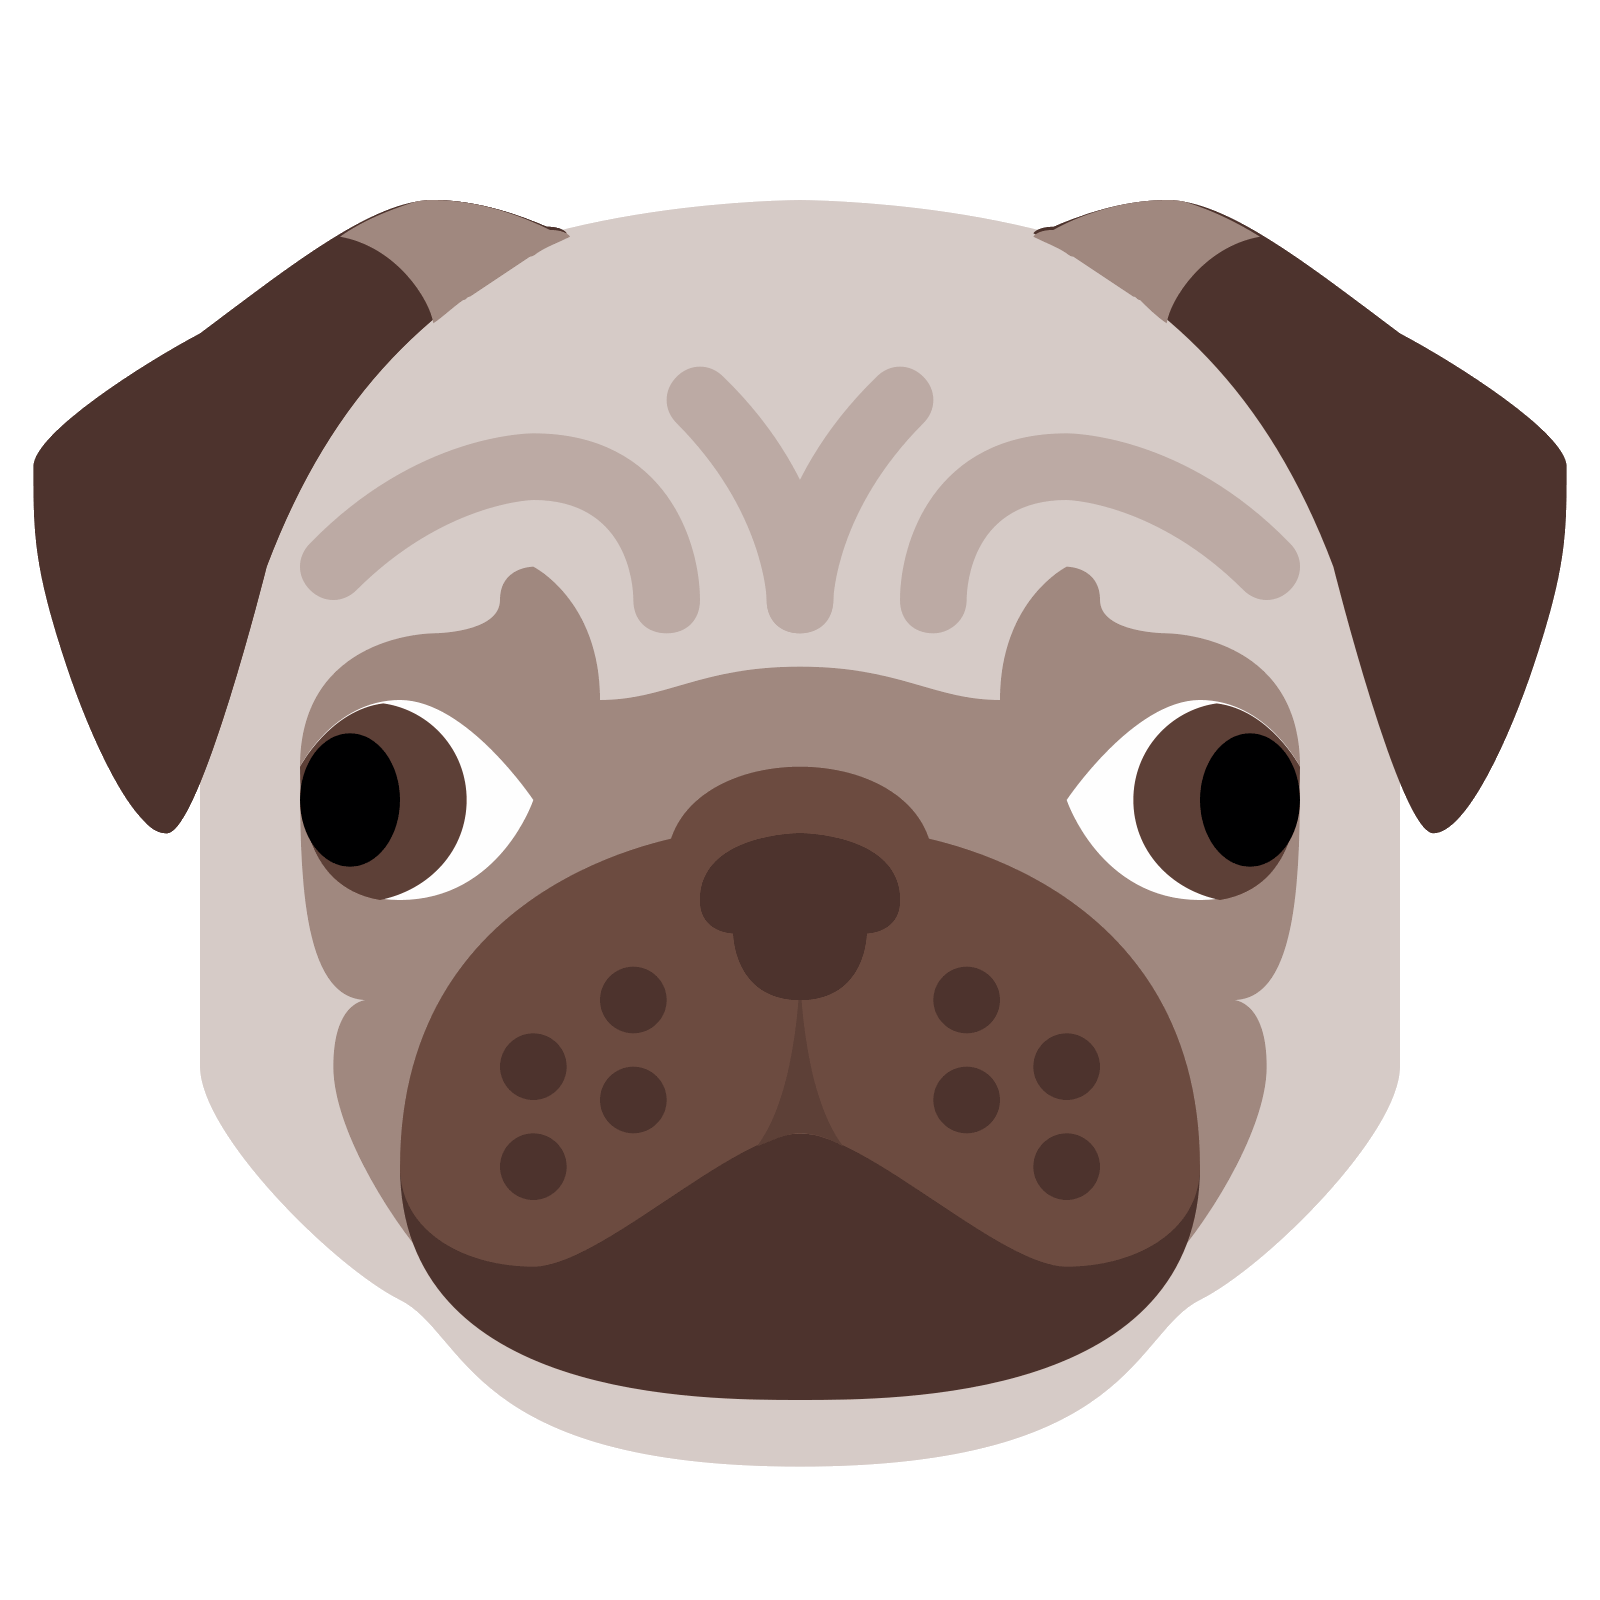 Pug face png. Icon free download and